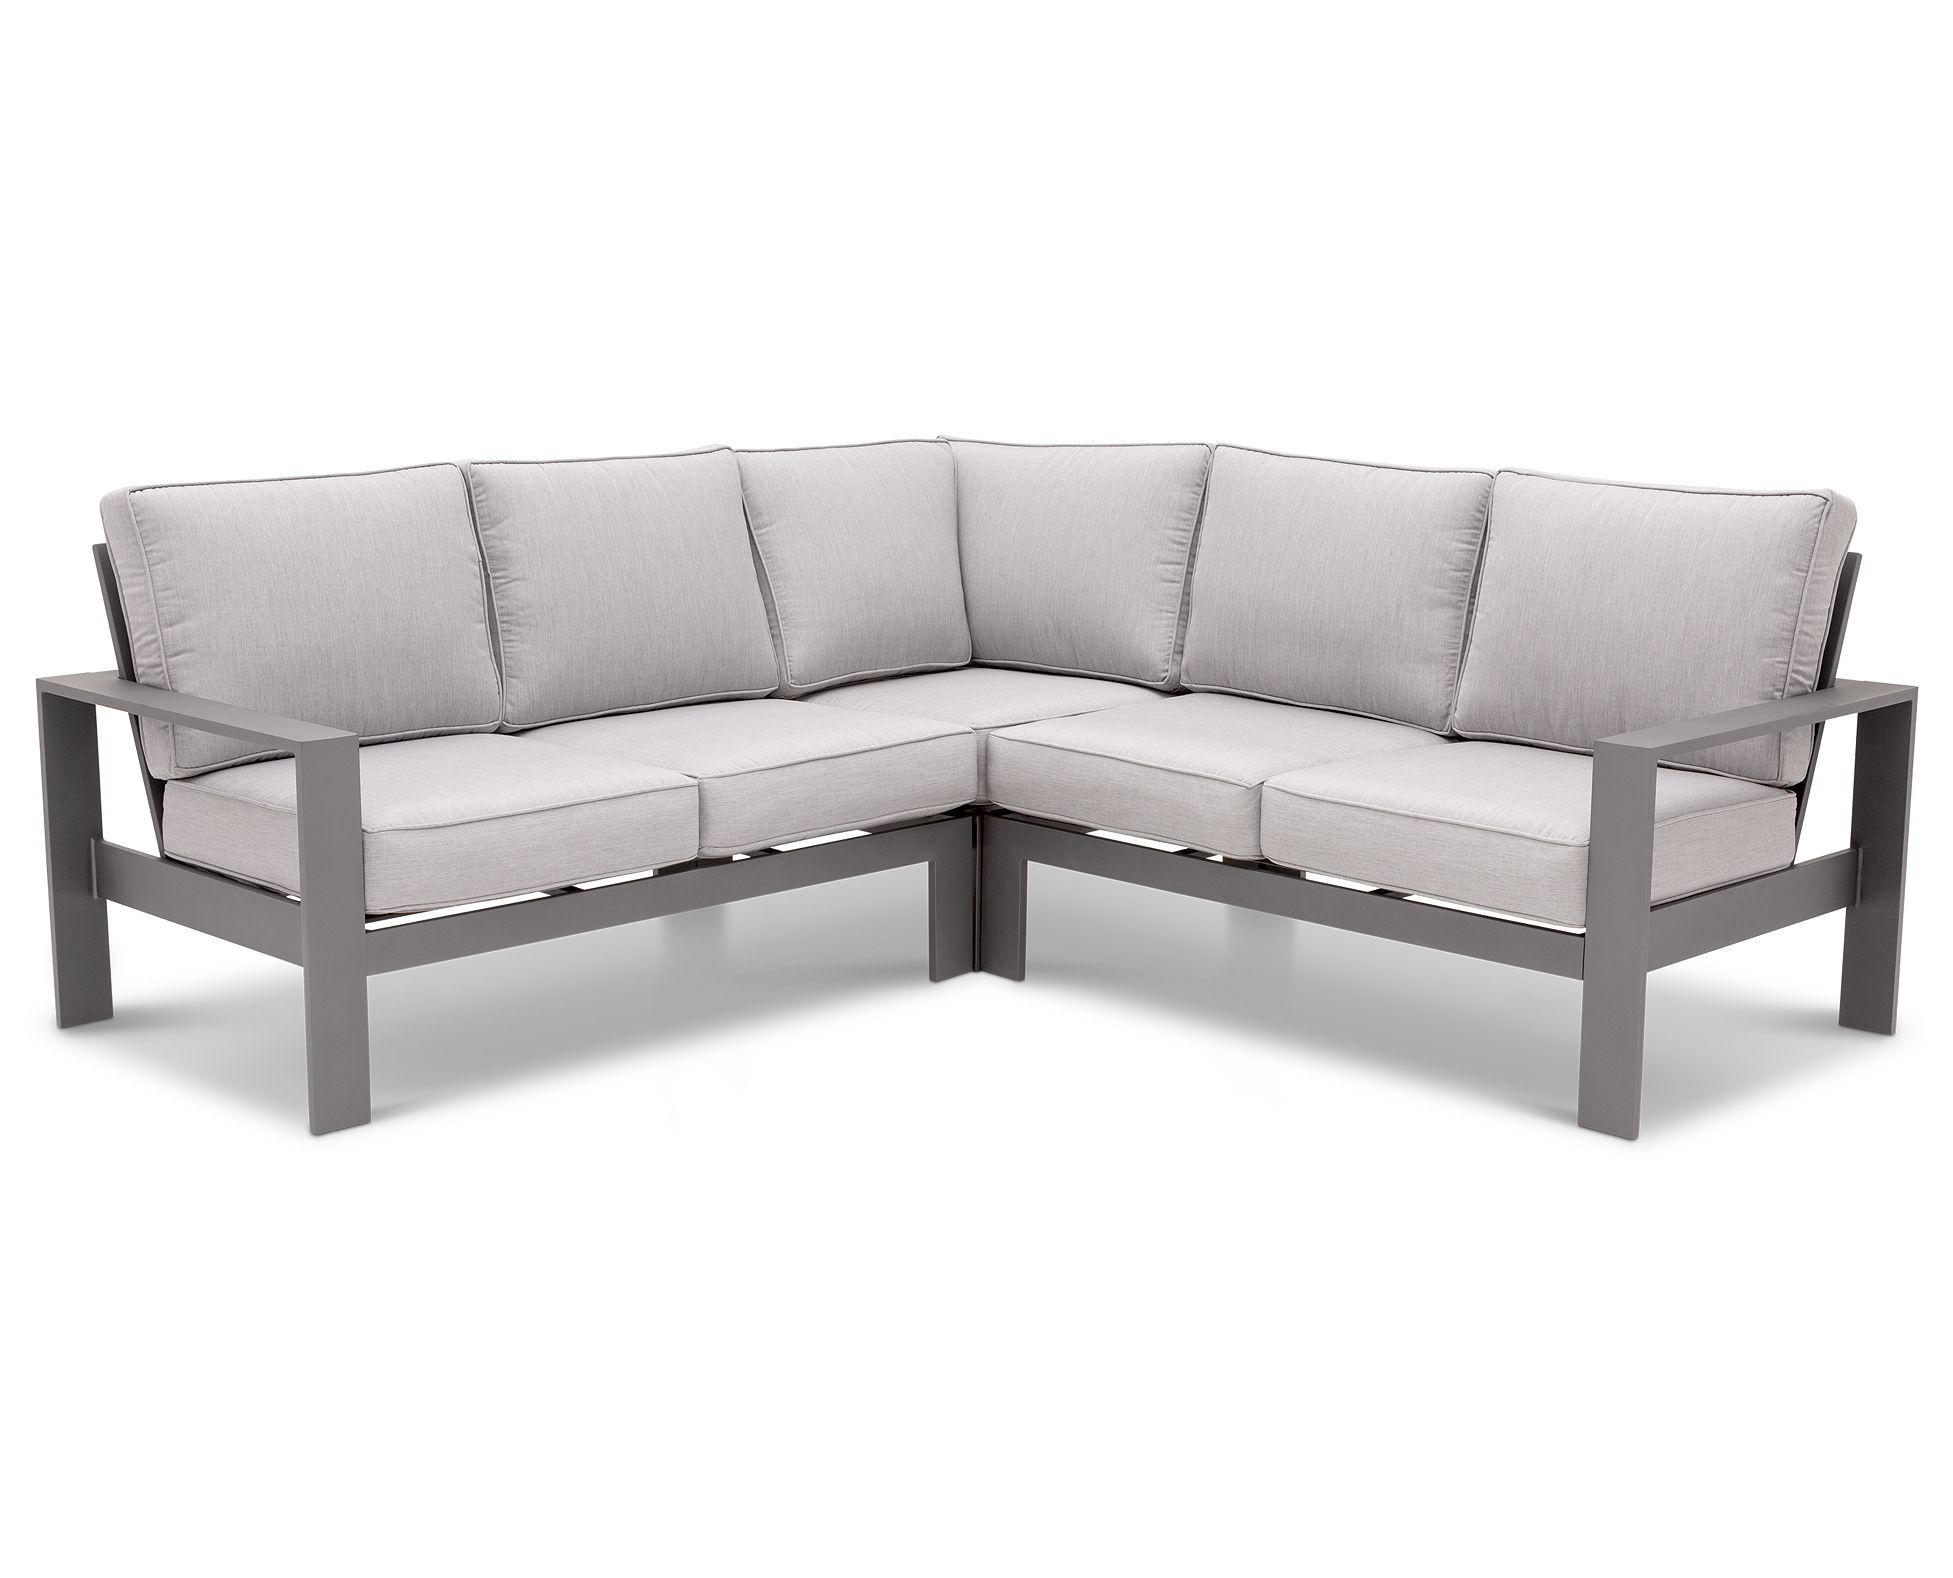 The Lugano 3 Piece Patio Sectional Brings Contemporary Style And Casual Comfort To Your Outdoor Living E In A Durable Light Gray Sunbrella Fabric